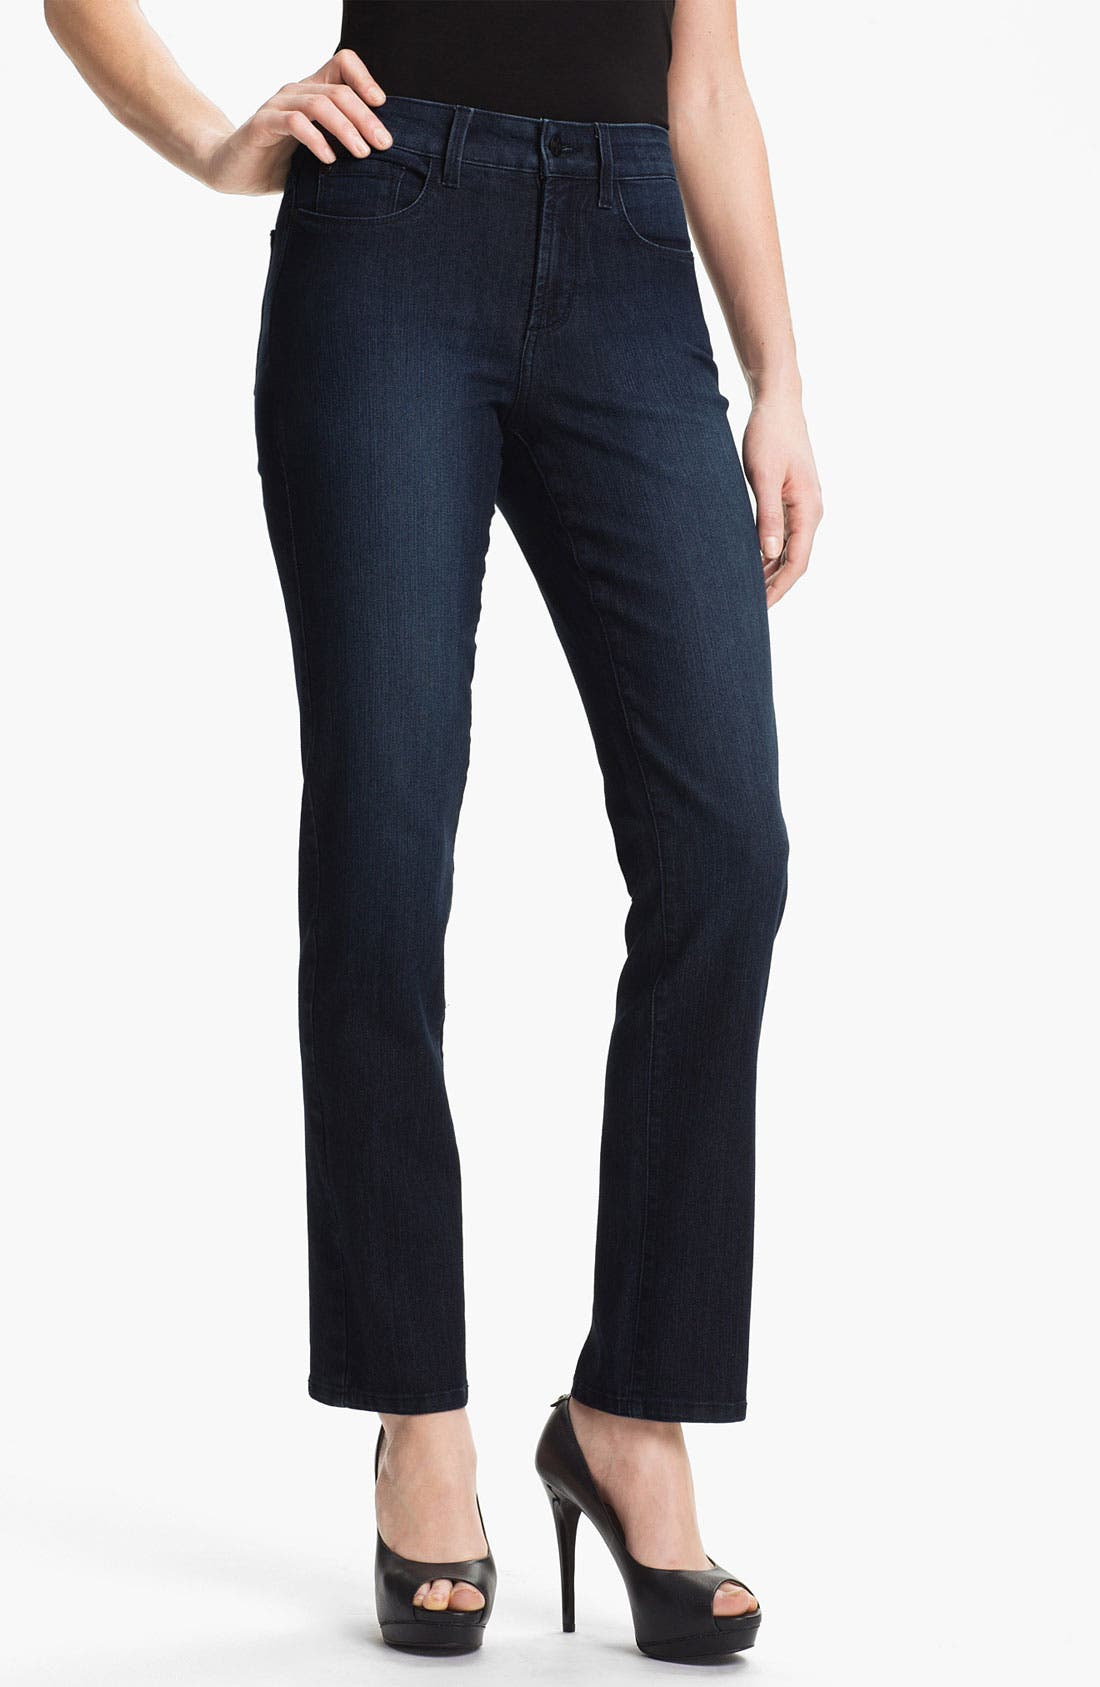 Alternate Image 1 Selected - NYDJ Studded 'Sheri' Skinny Jeans (Petite)